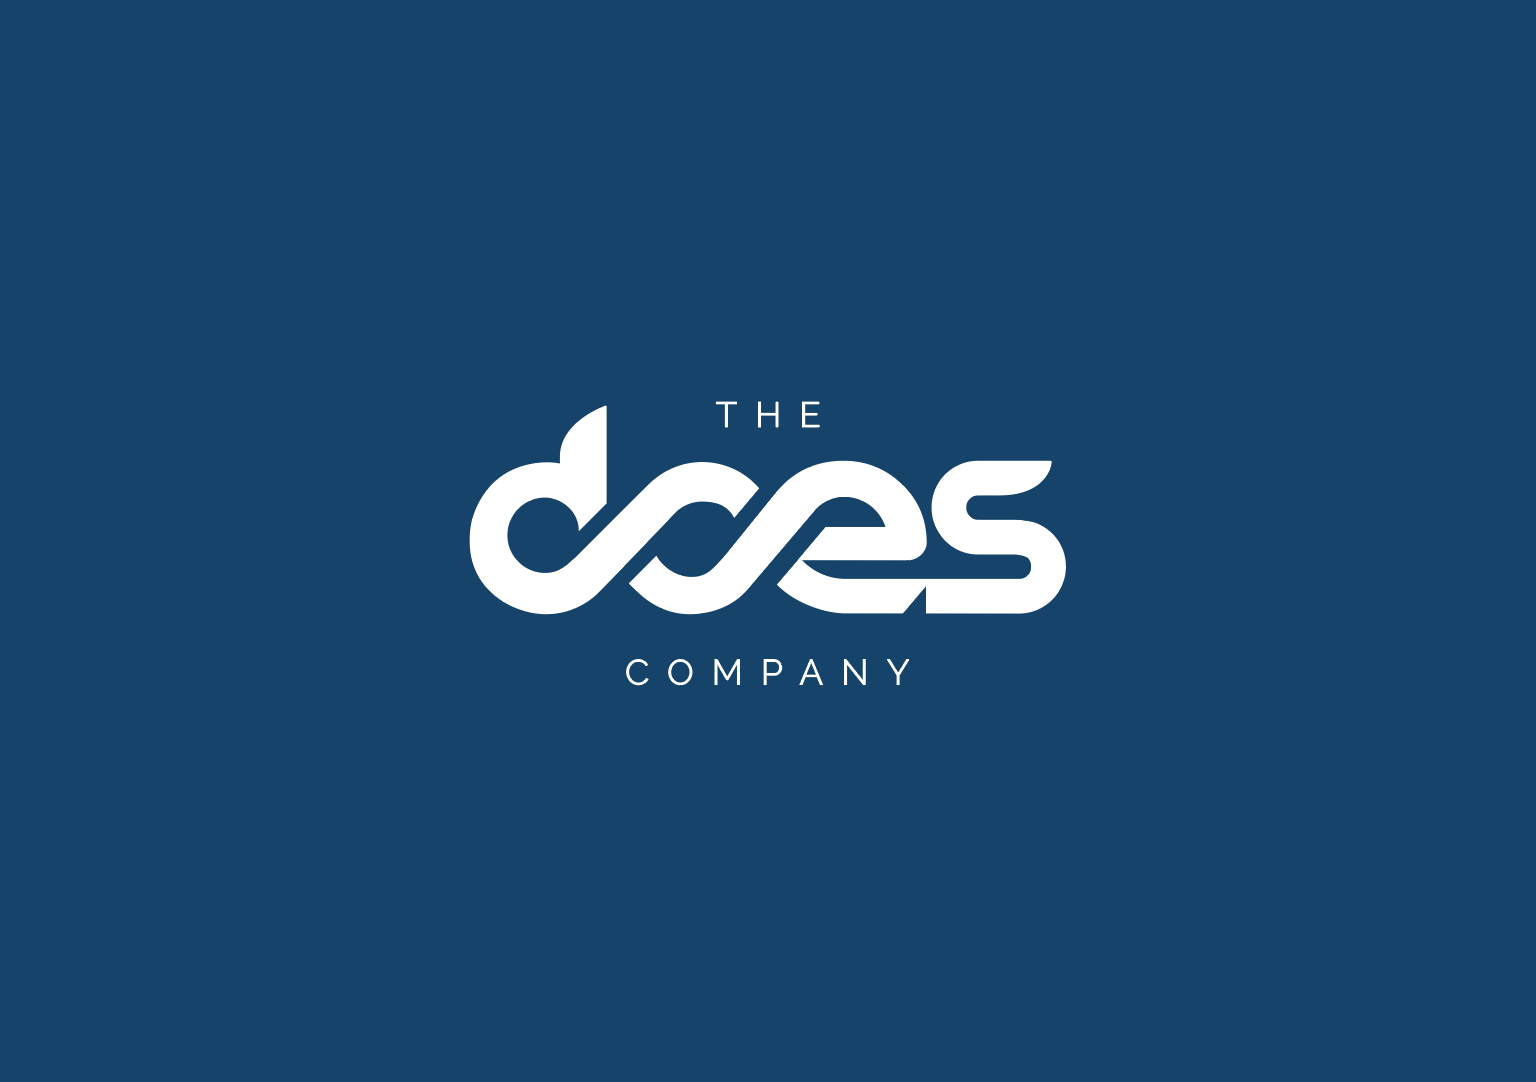 THE DOES COMPANY